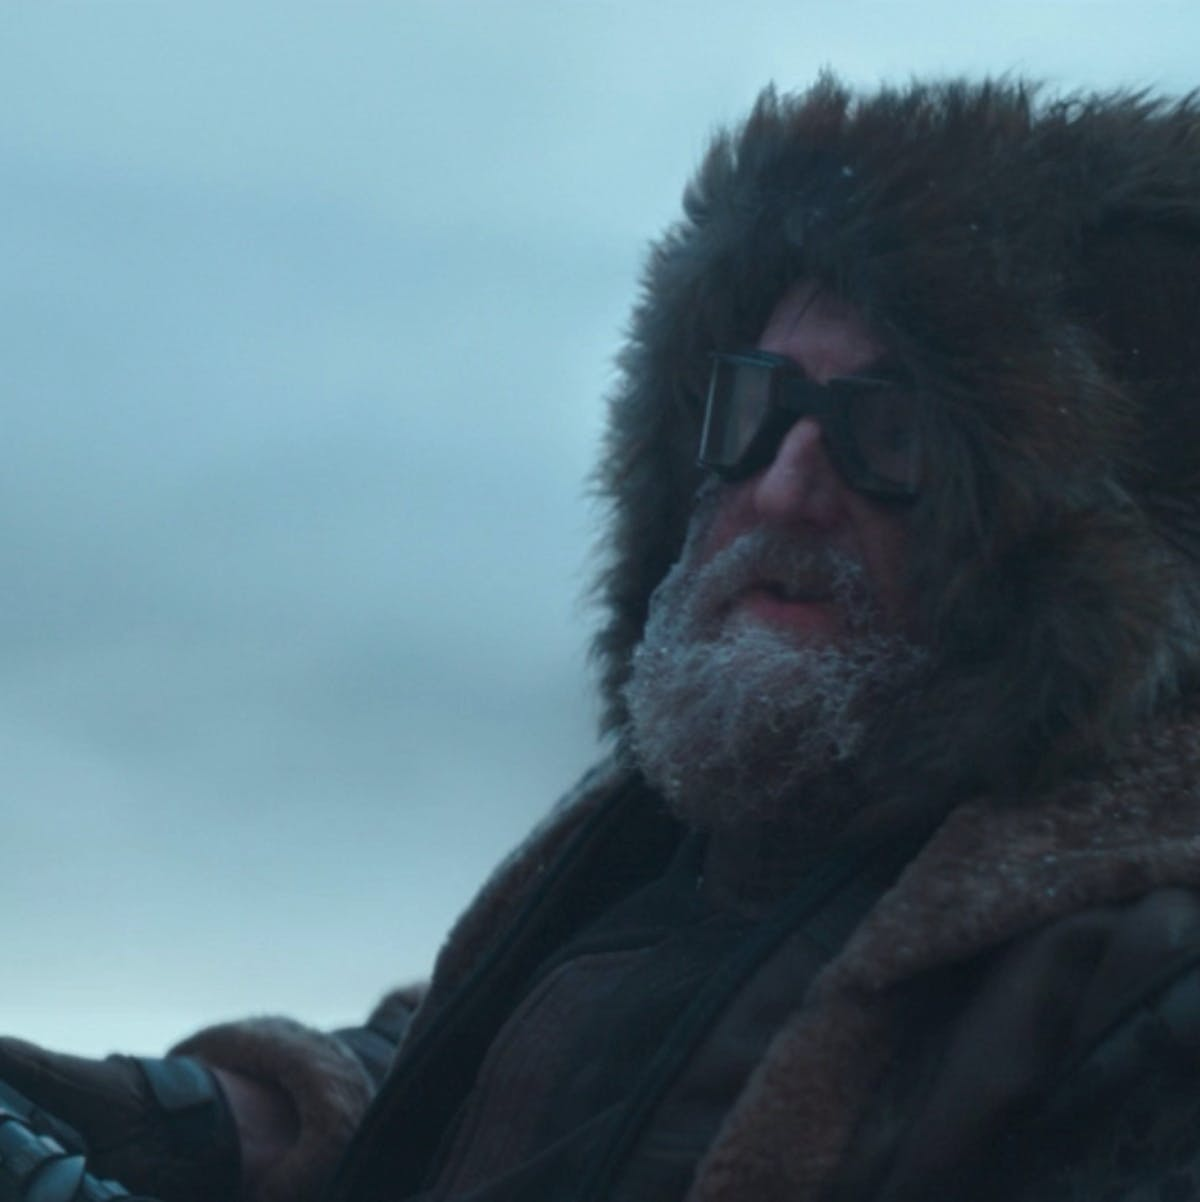 Yes, that is Brian Posehn from 'Sarah Silverman' in 'The Mandalorian'